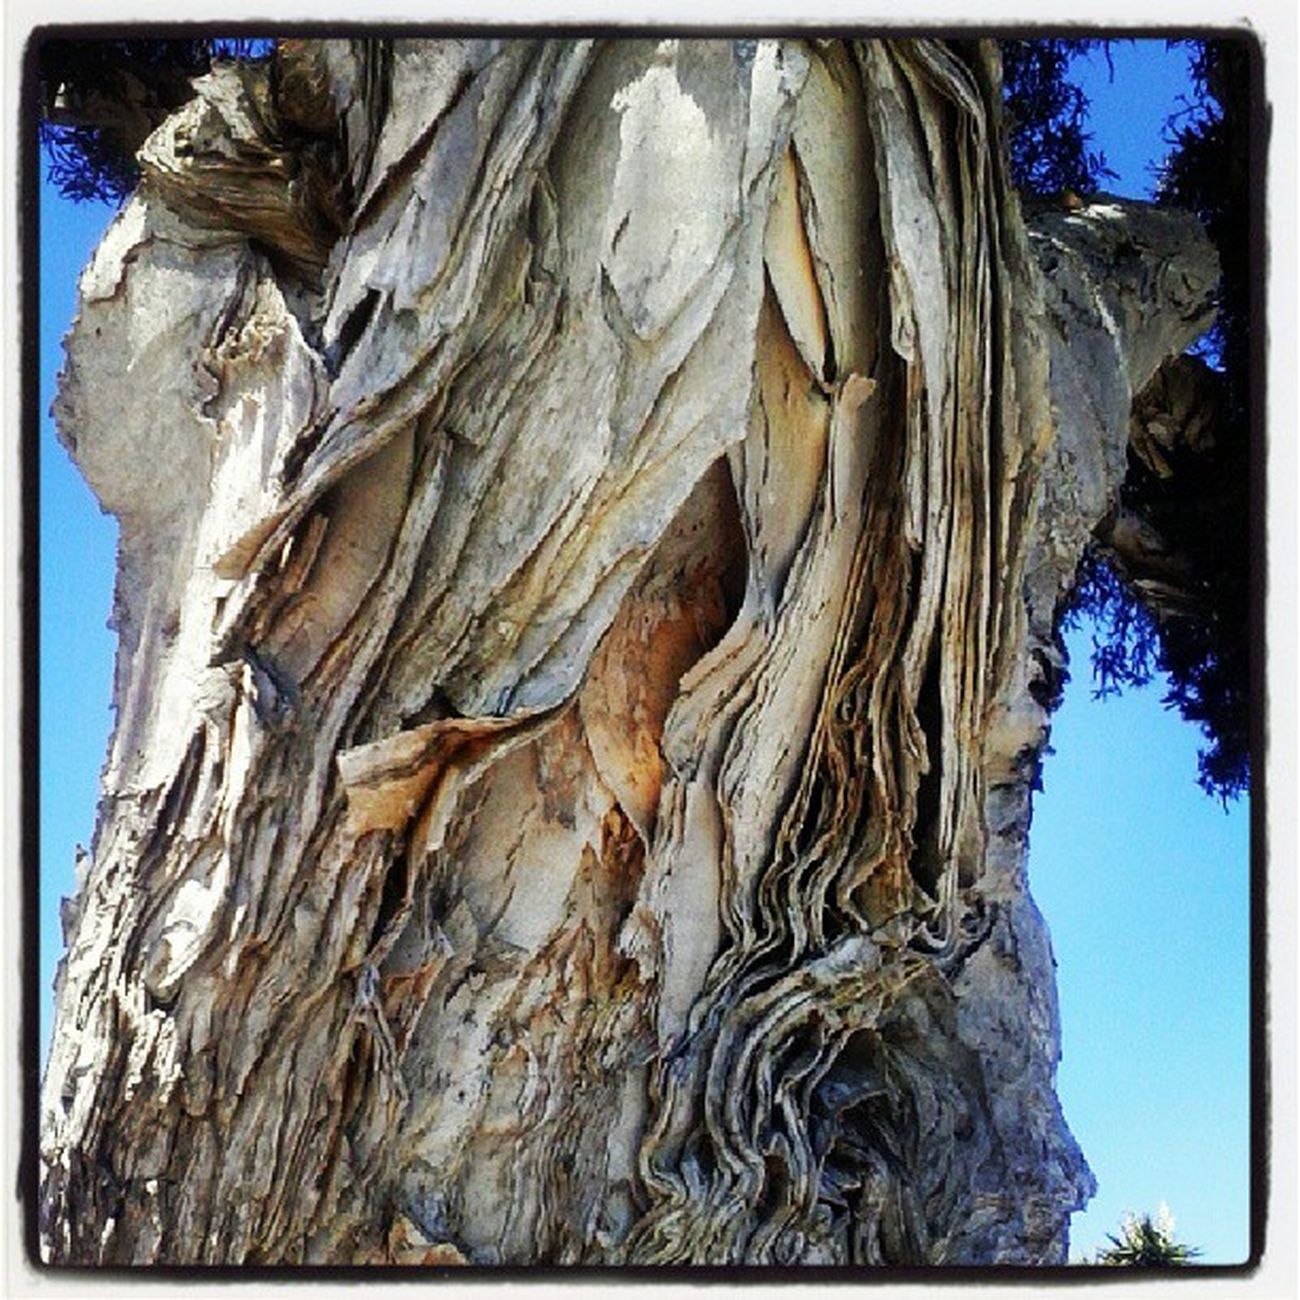 "So I was walking and stopped to look at this gorgeous tree trunk, when this middle-aged dude on a bicycle paused to chat. He asked if I was enjoying the ""paper"" tree, and I said yes, I was. He supposed that one could only see such a lovely tree in a place Santa Barbara. ""Then again,"" he continued, ""this place has the evilest women on the face of the earth."" I told him I would be on guard in that case."